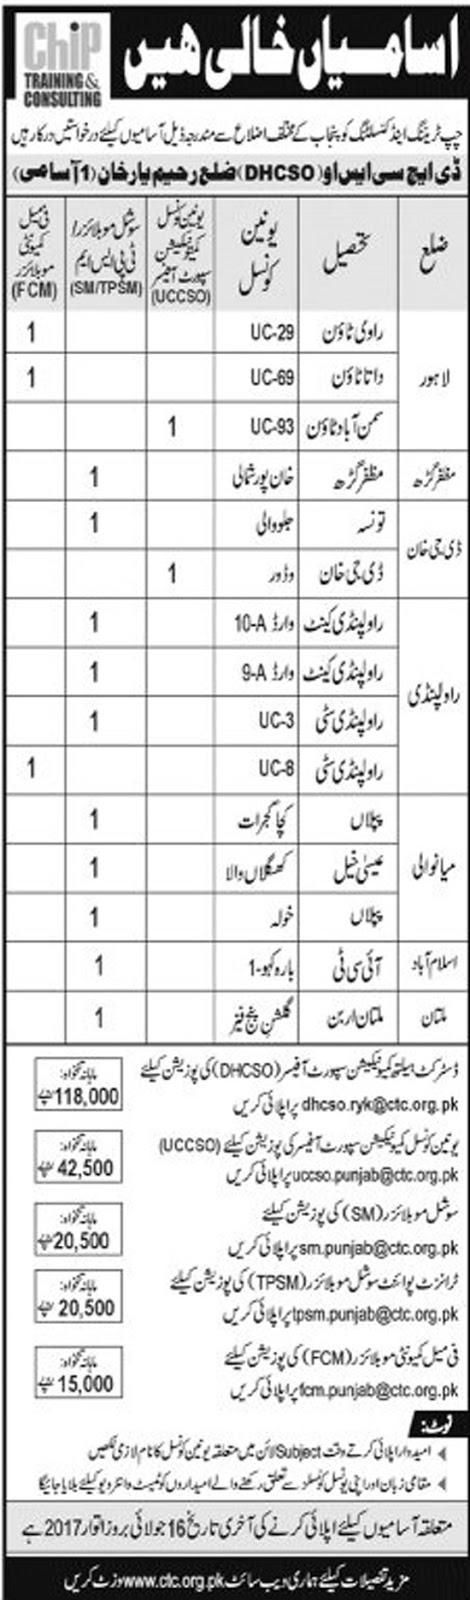 Jobs In Chip Training & Consulting Punjab Jul 2017